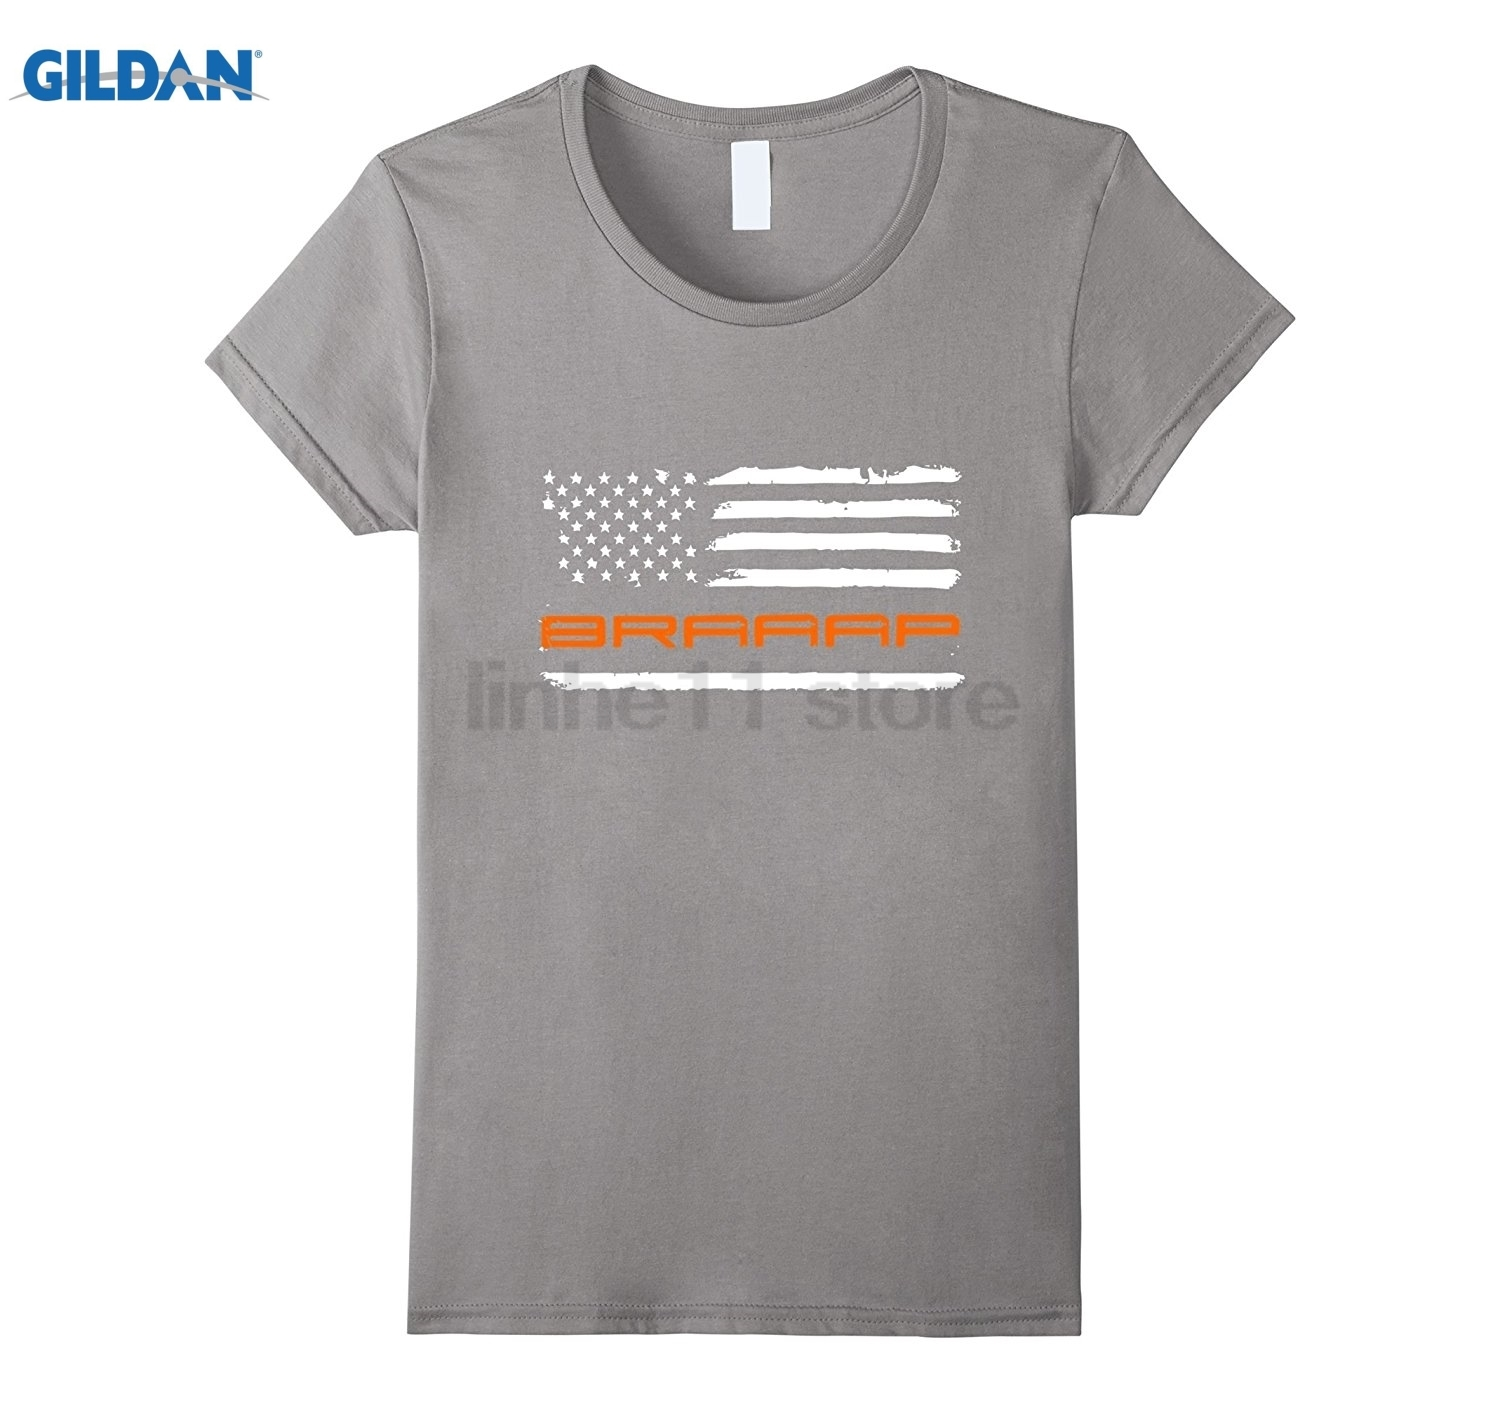 GILDAN Braaap - Motocross, Dirt , Motorcycle, Flag Blaze Orange Womens T-shirt